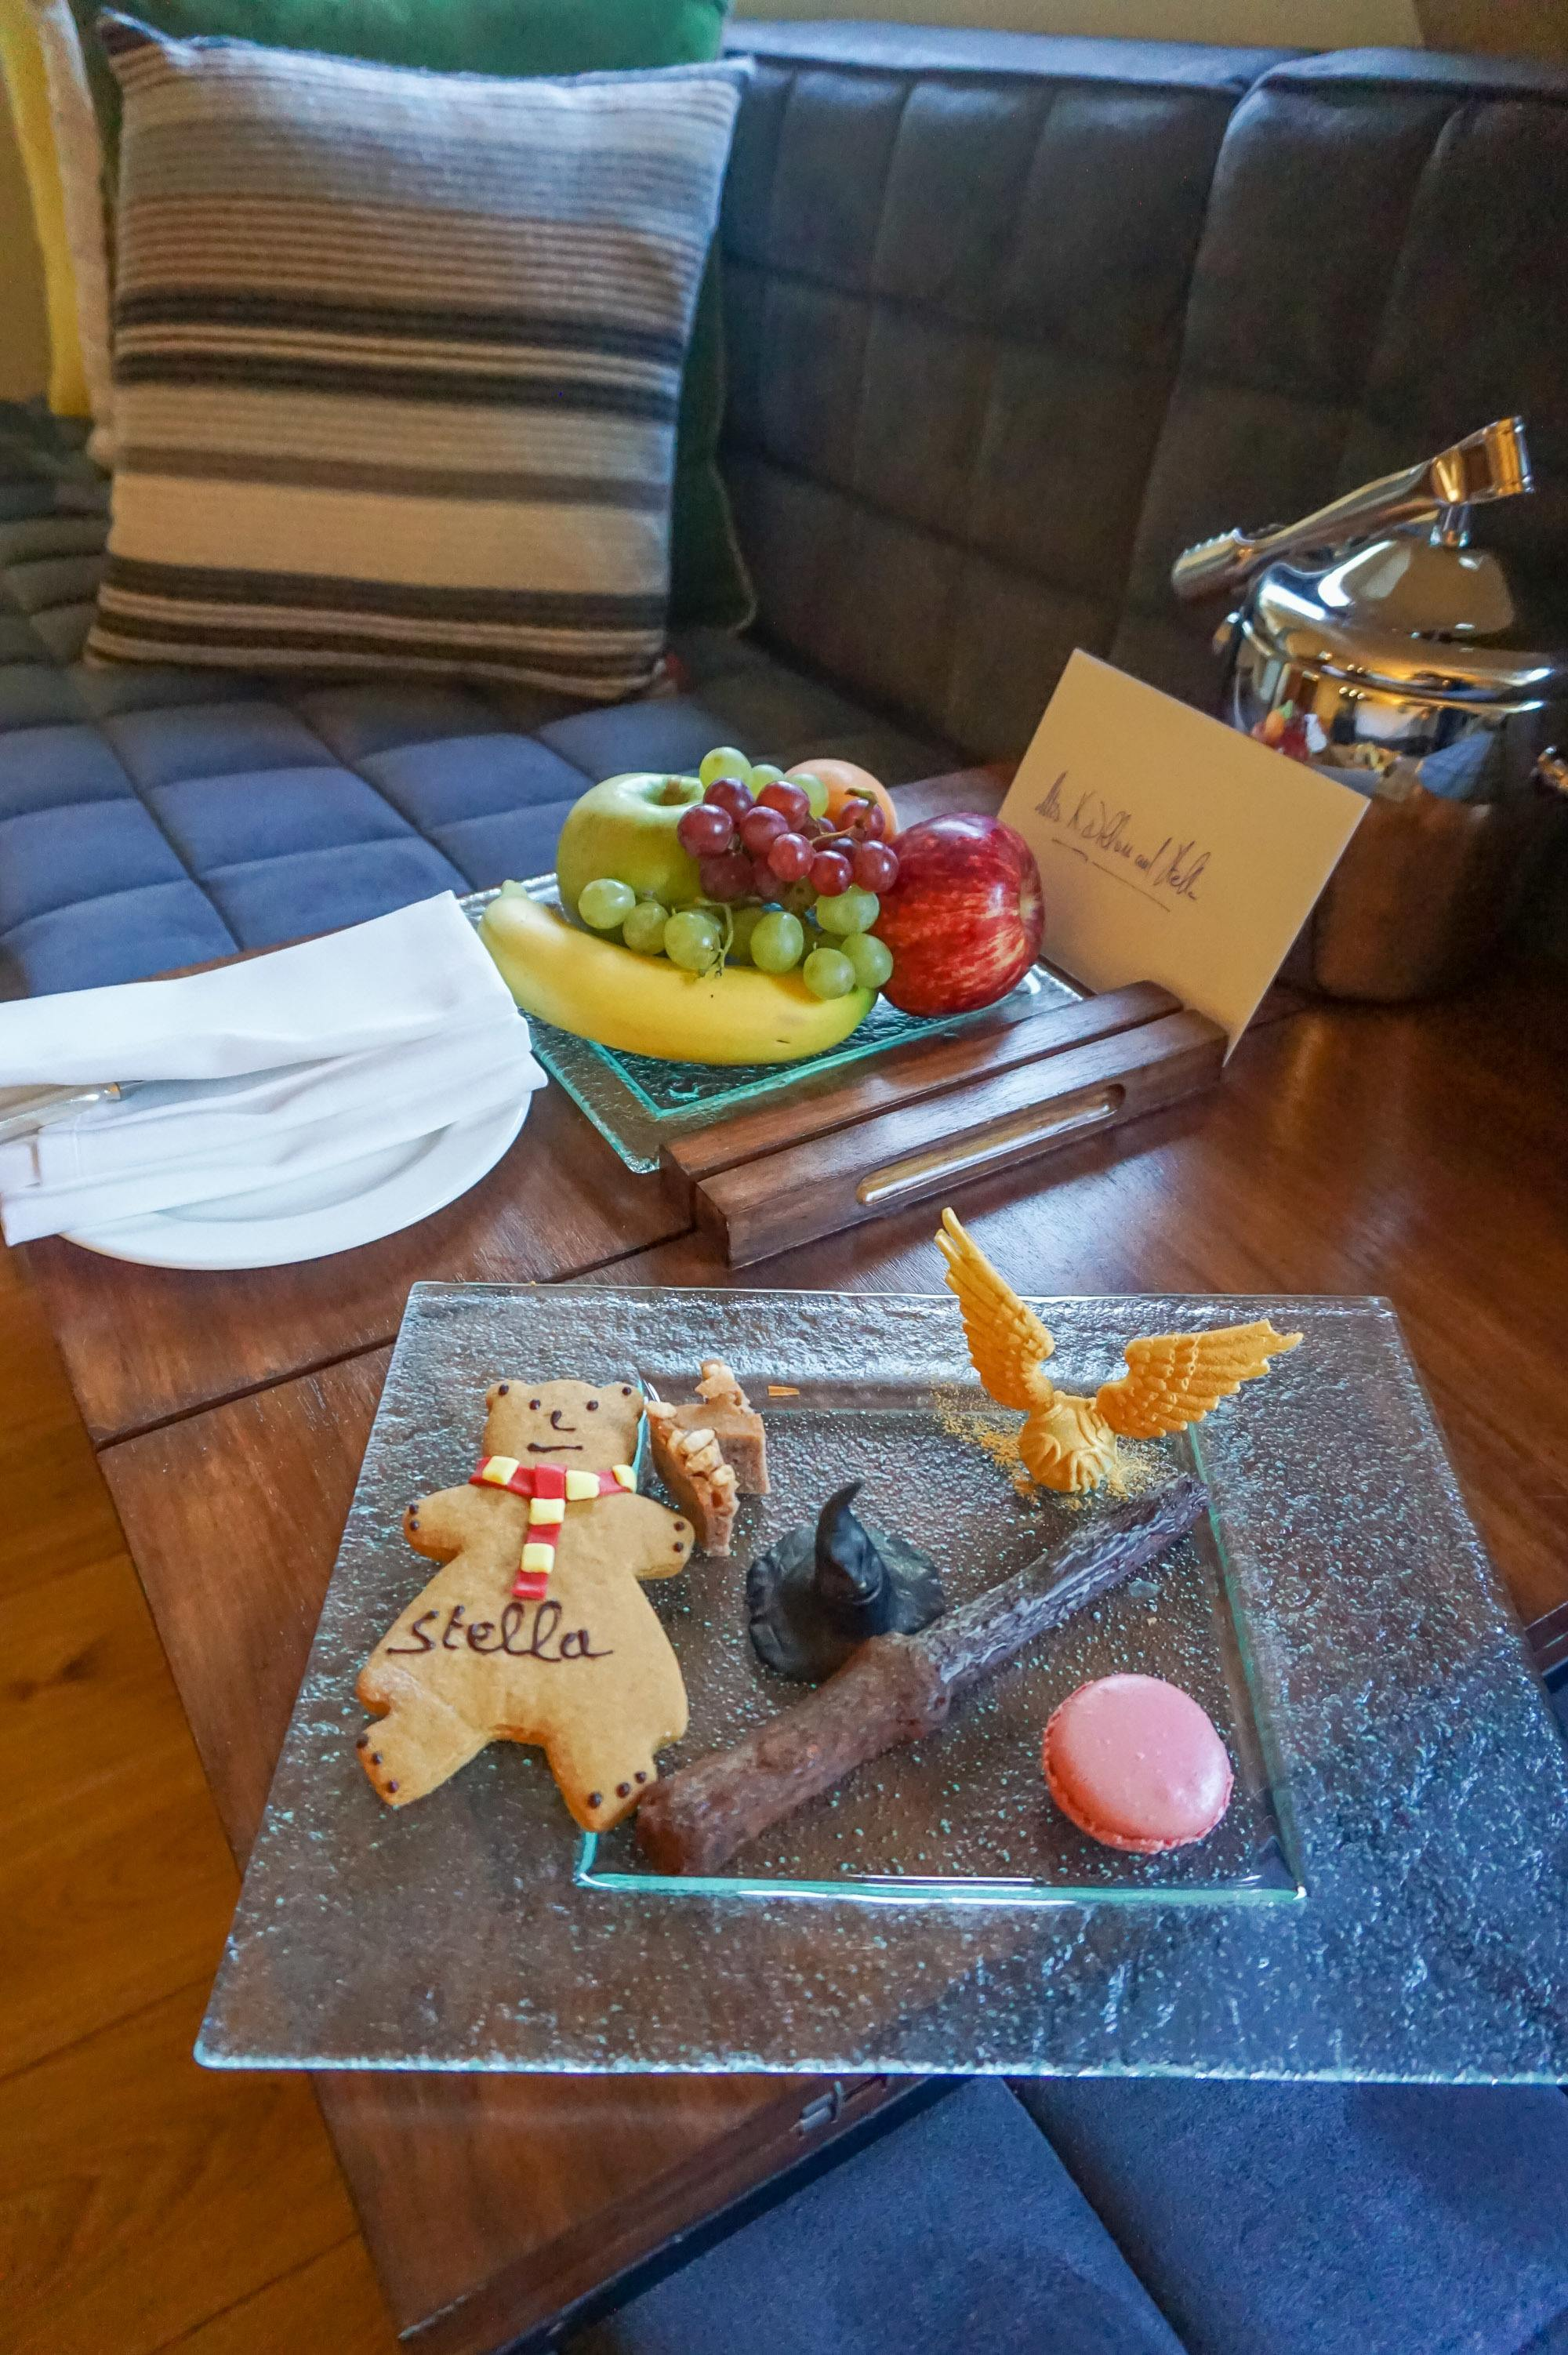 A Harry Potter amenity from Brown's Hotel in London.